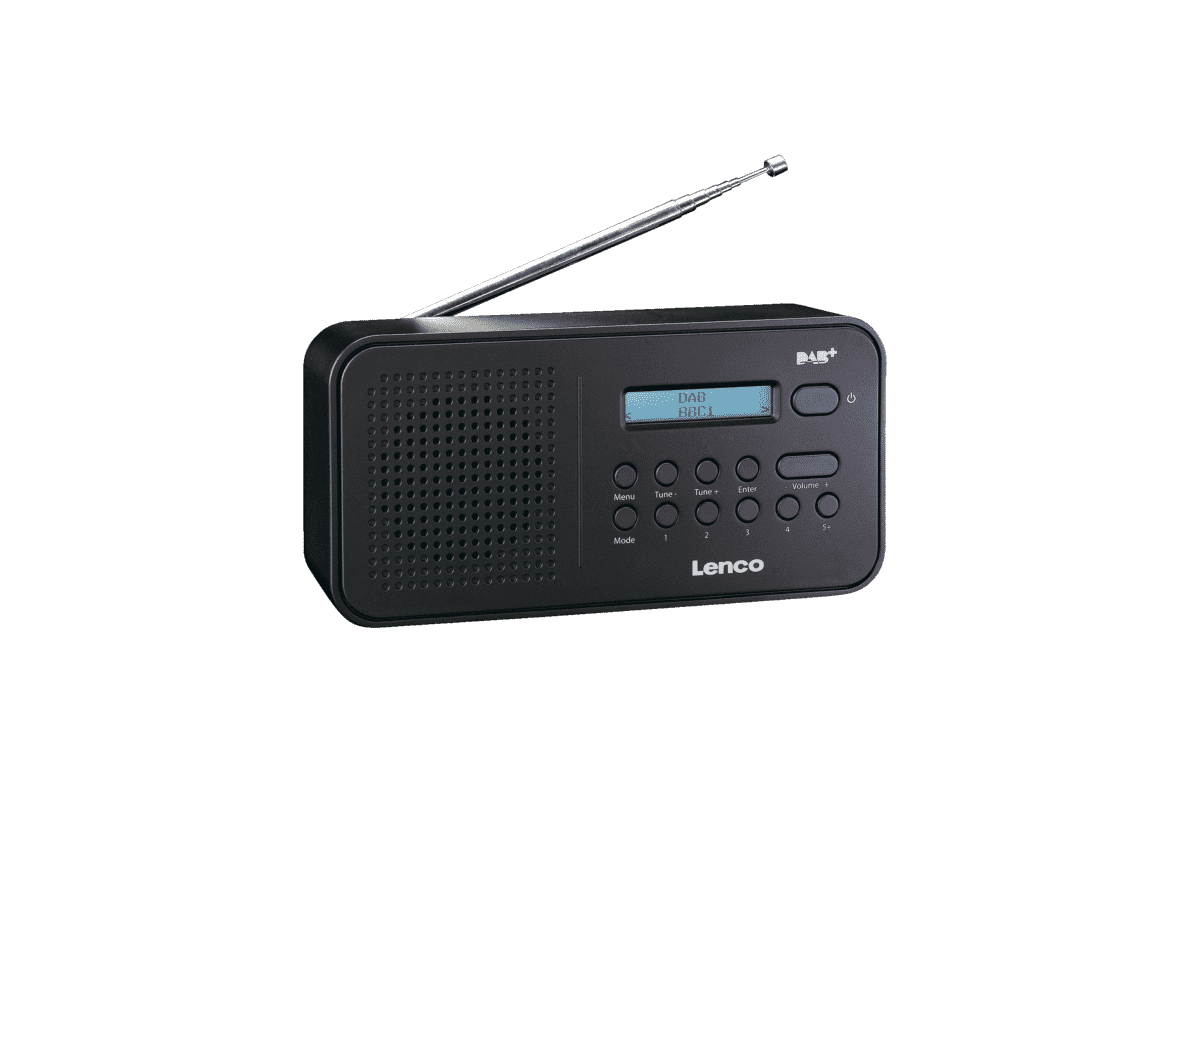 LENCO PDR-015 Digitalradio in Schwarz